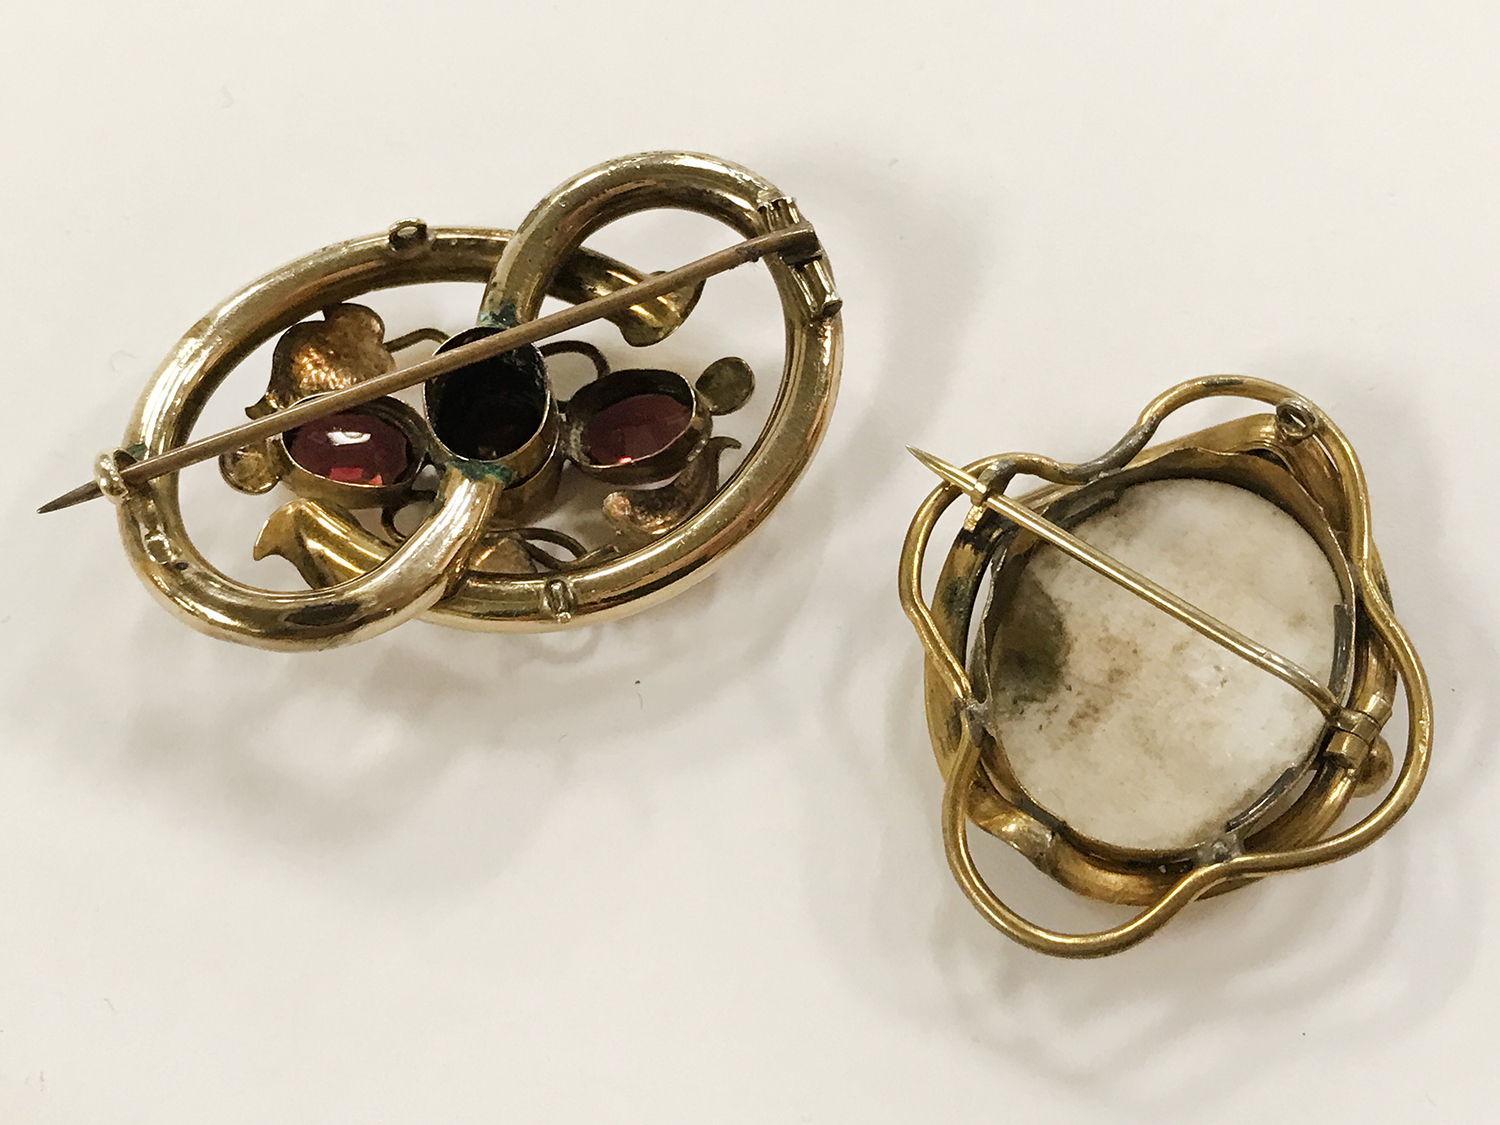 TWO ANTIQUE PIN BROOCHES - Image 5 of 5